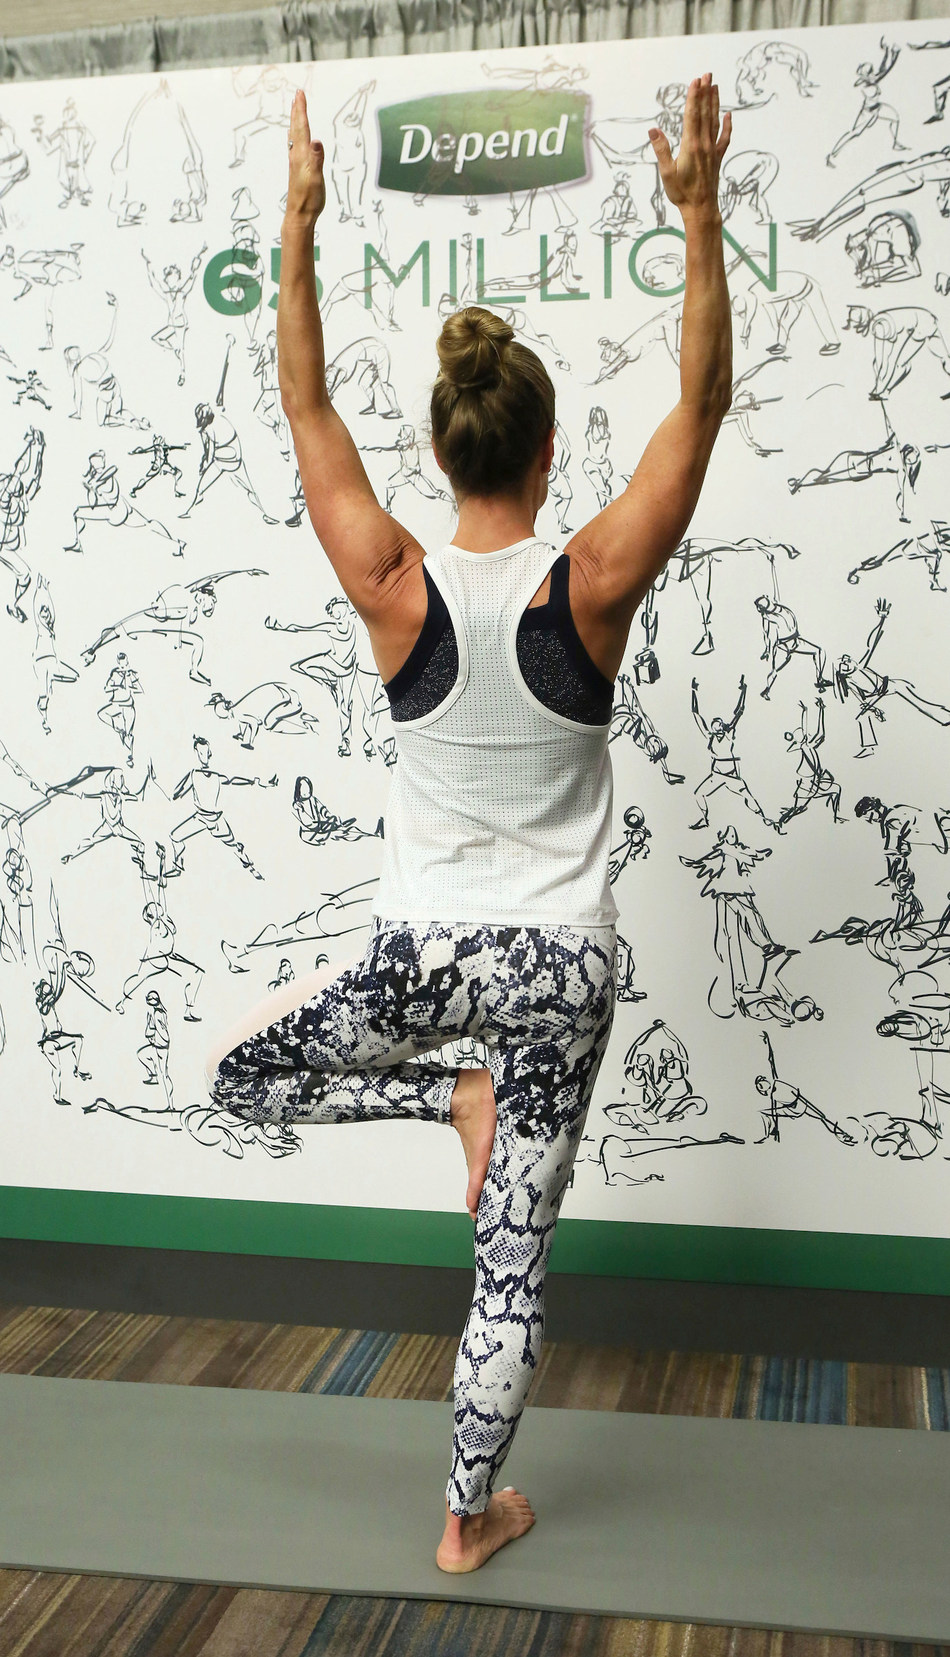 Suzie Haines poses in front of the final mural of silhouette drawings by local New York illustrator, Gil Franco, at the Depend brand exhibitor booth in New York City at the Yoga Journal Live event on Sunday, April 23, 2017. (Stuart Ramson / AP Images for Kimberly-Clark)